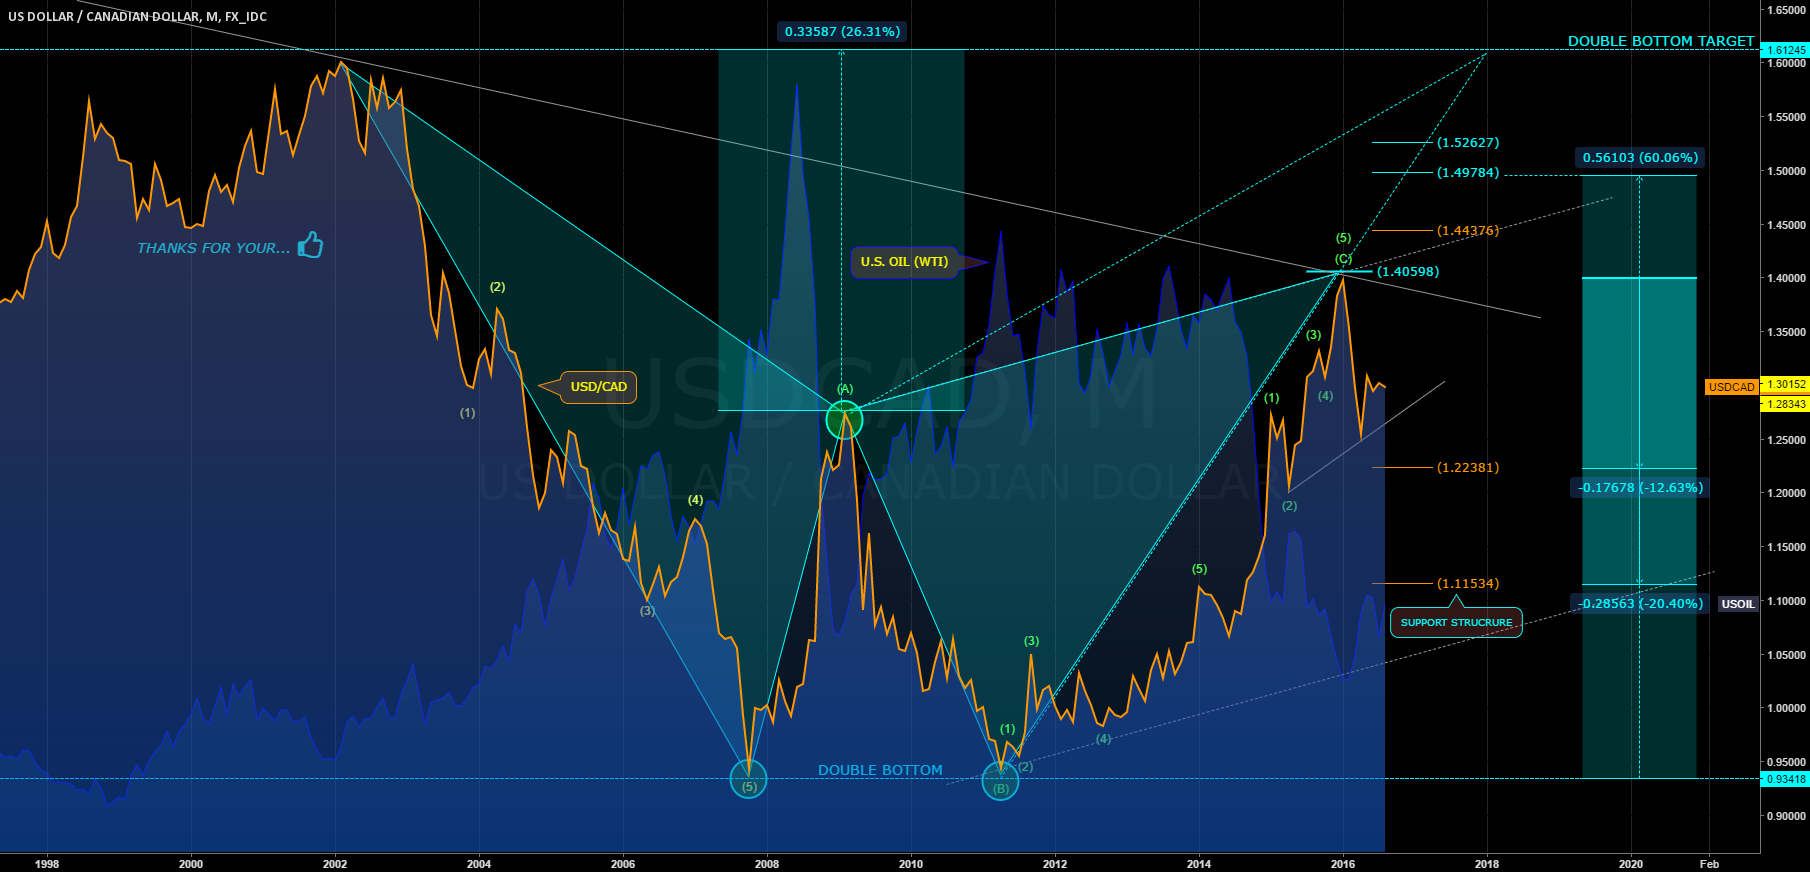 USDCAD: MONTHLY ANALYSIS